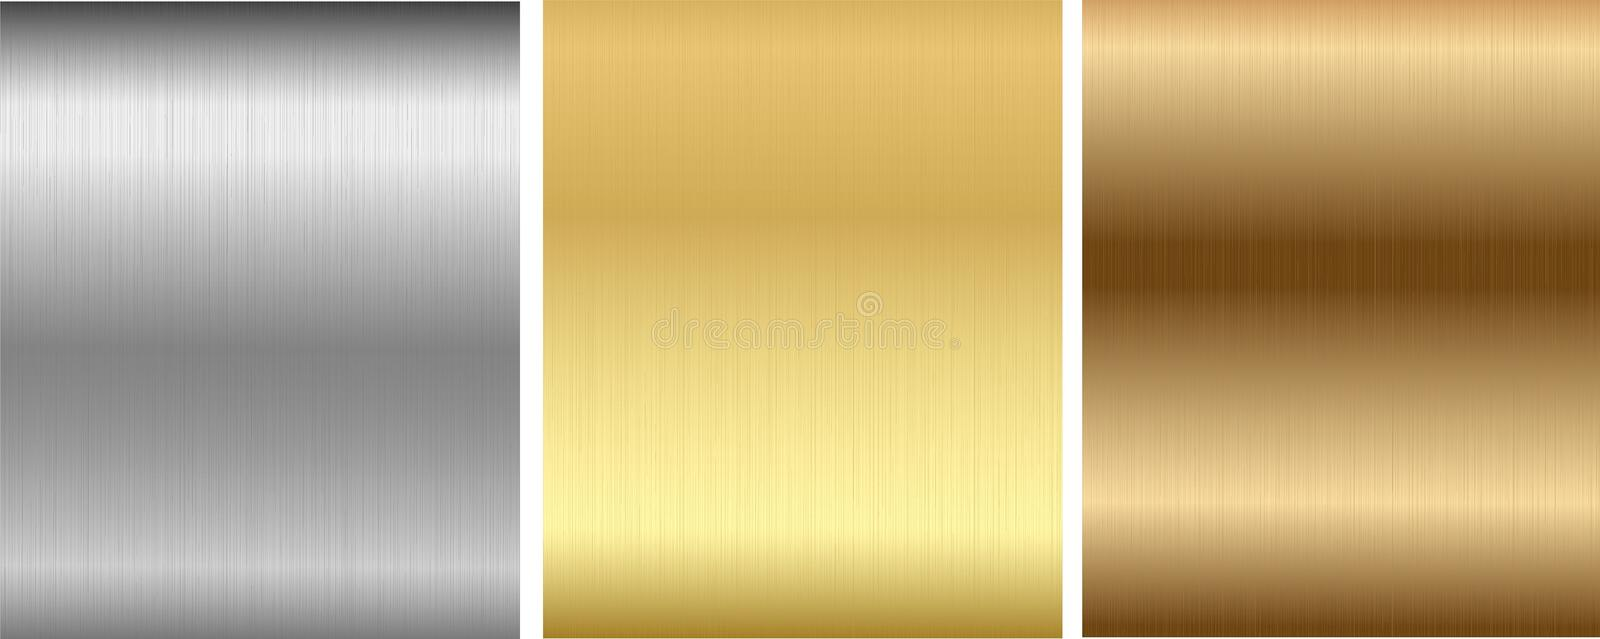 Download Aluminum, Bronze And Brass Stitched Textures Stock Vector - Image: 18456511